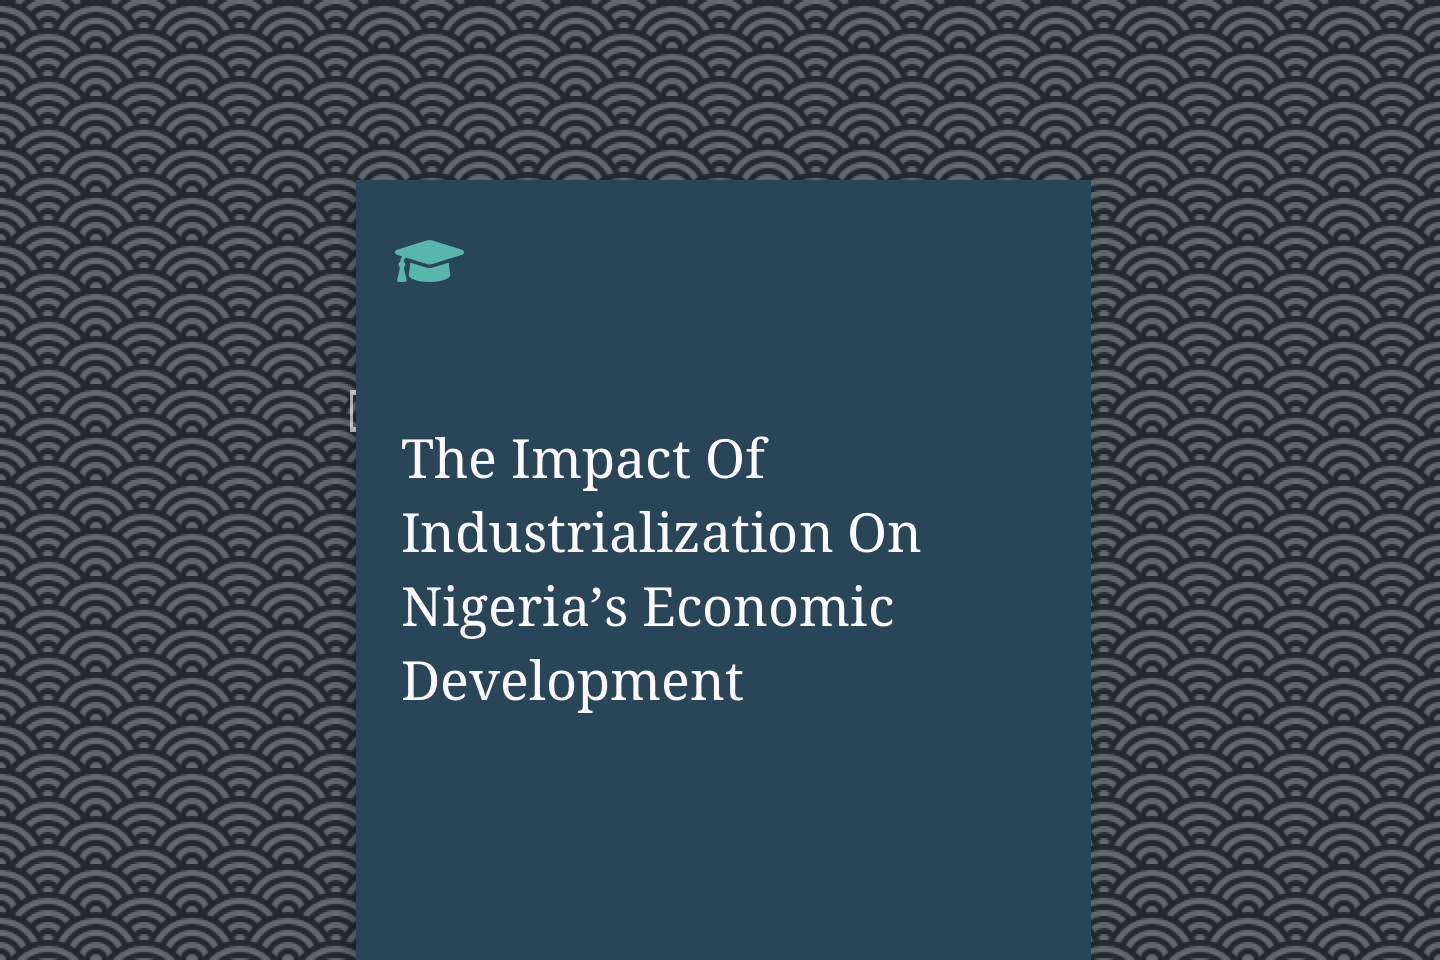 The Impact Of Industrialization On Nigeria's Economic Development